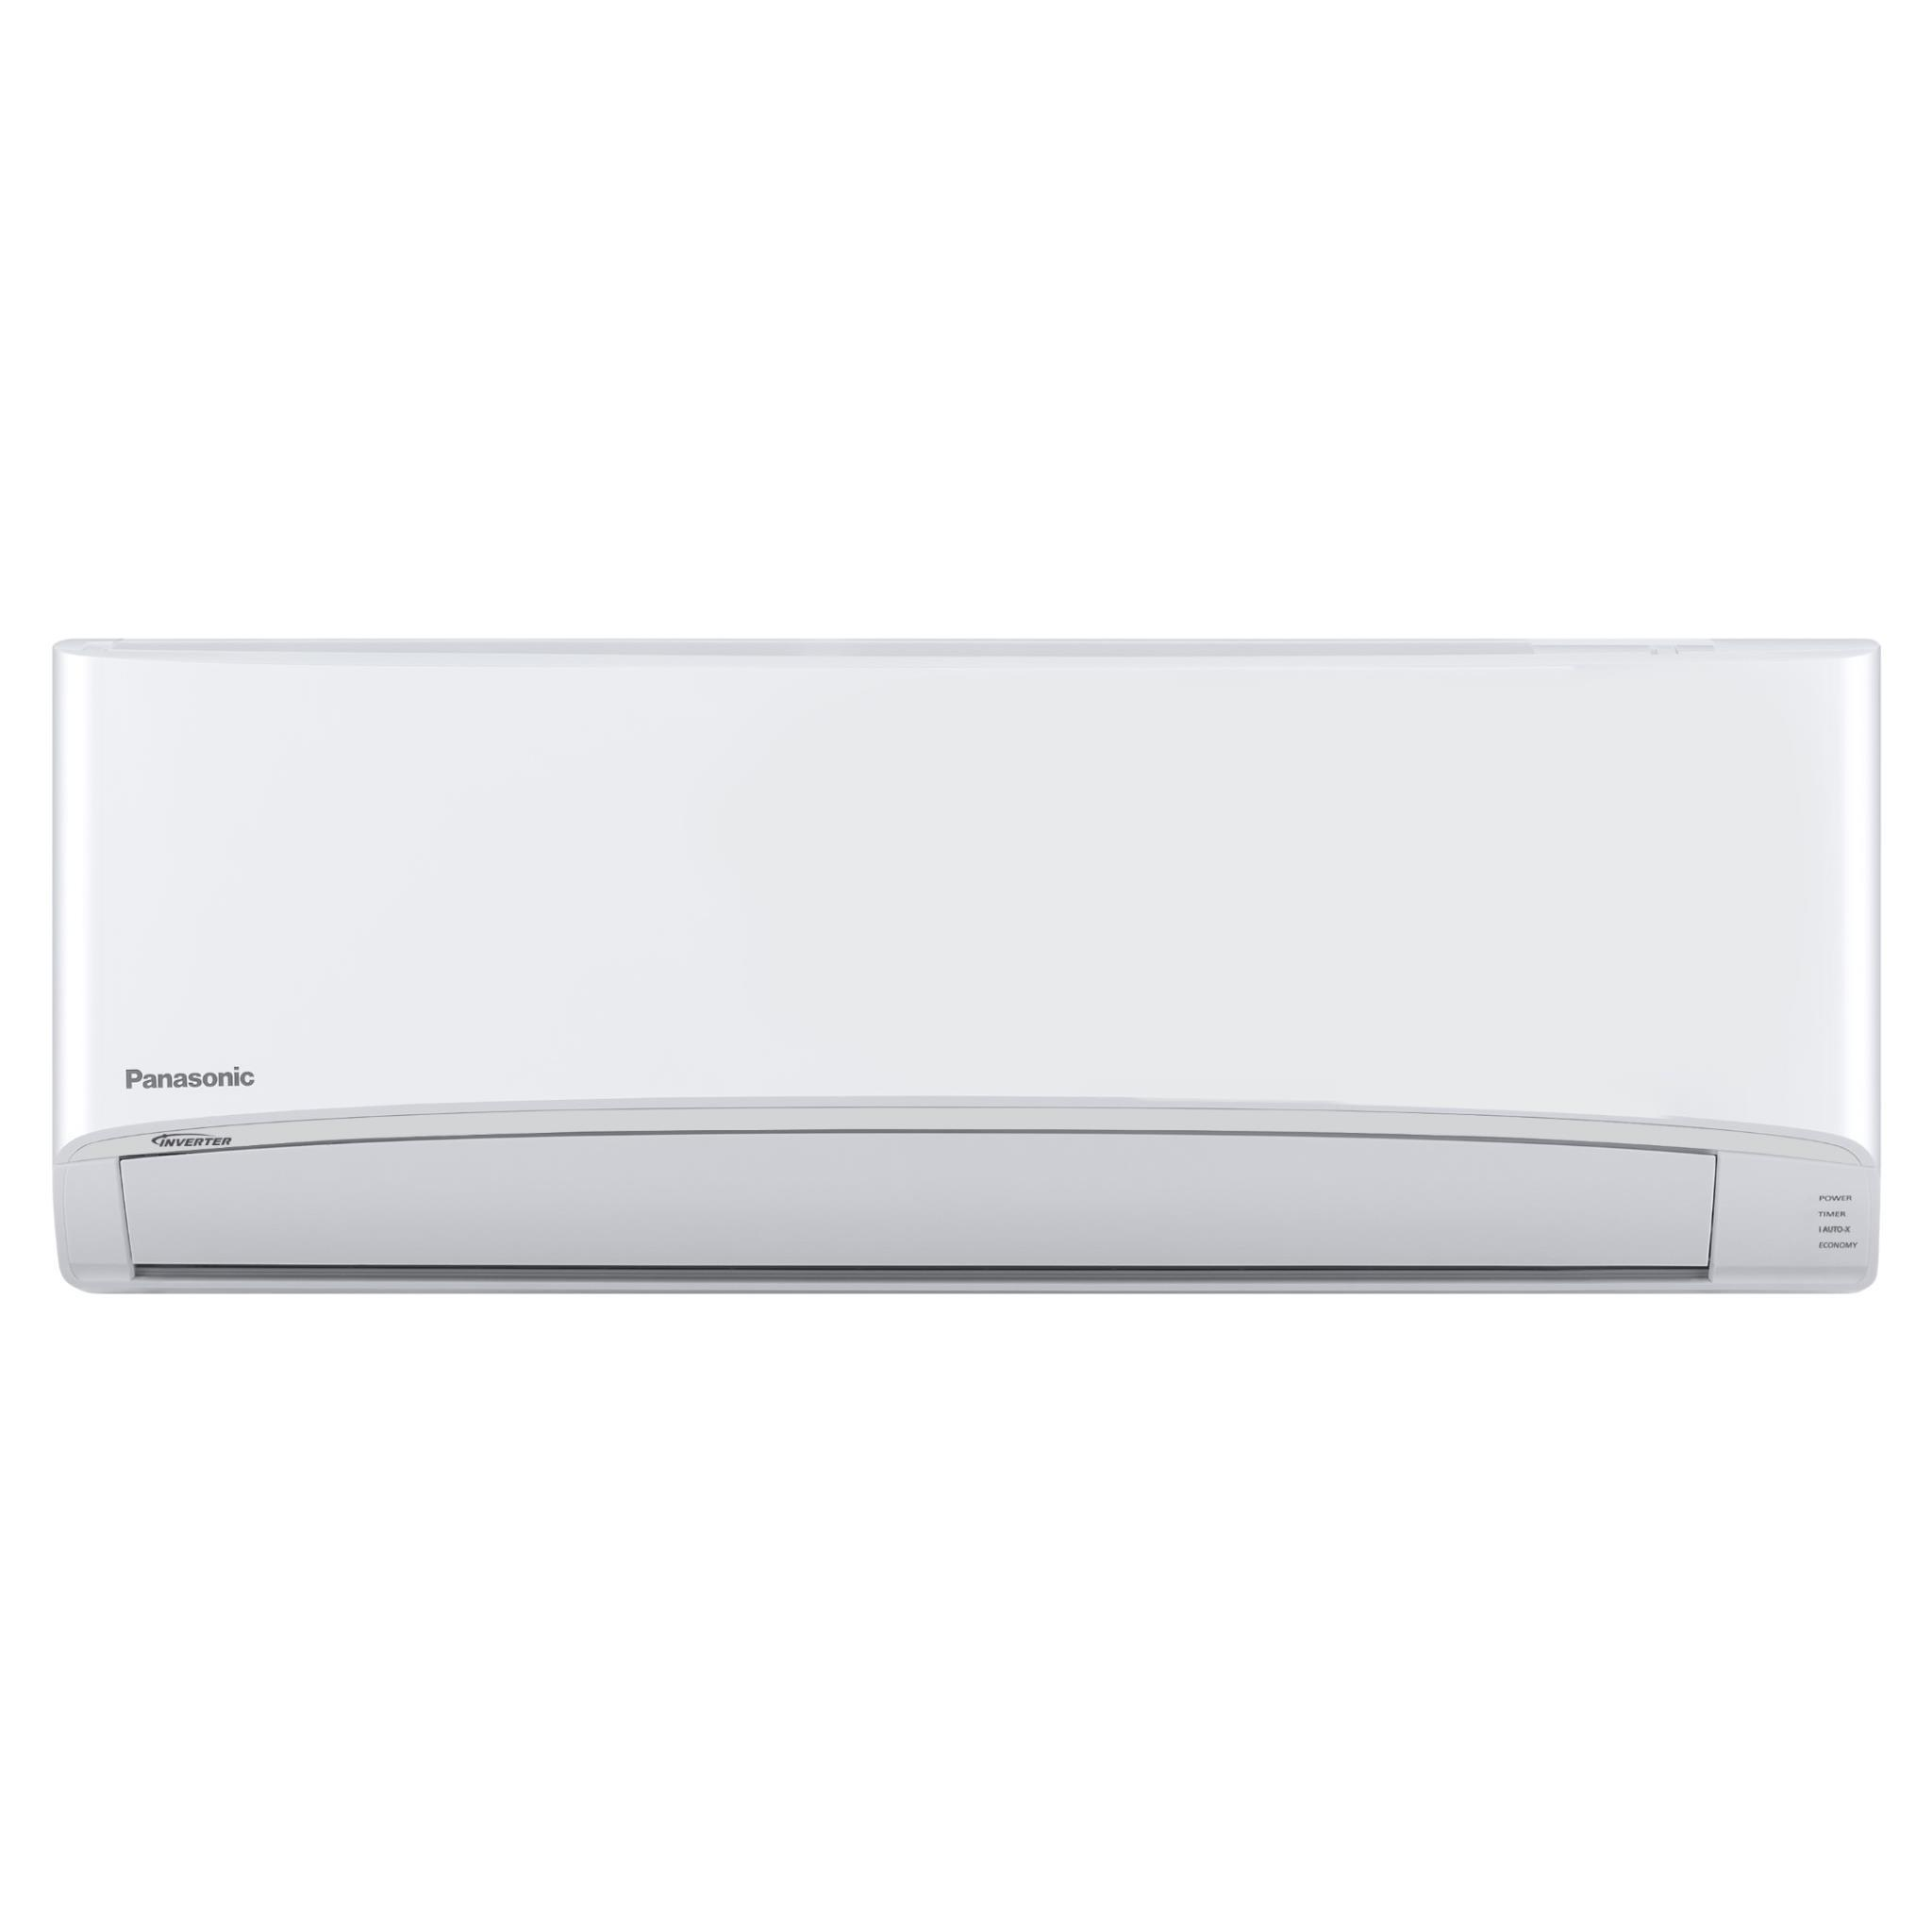 Panasonic 2.5kW Aero Cooling Only Air Conditioner